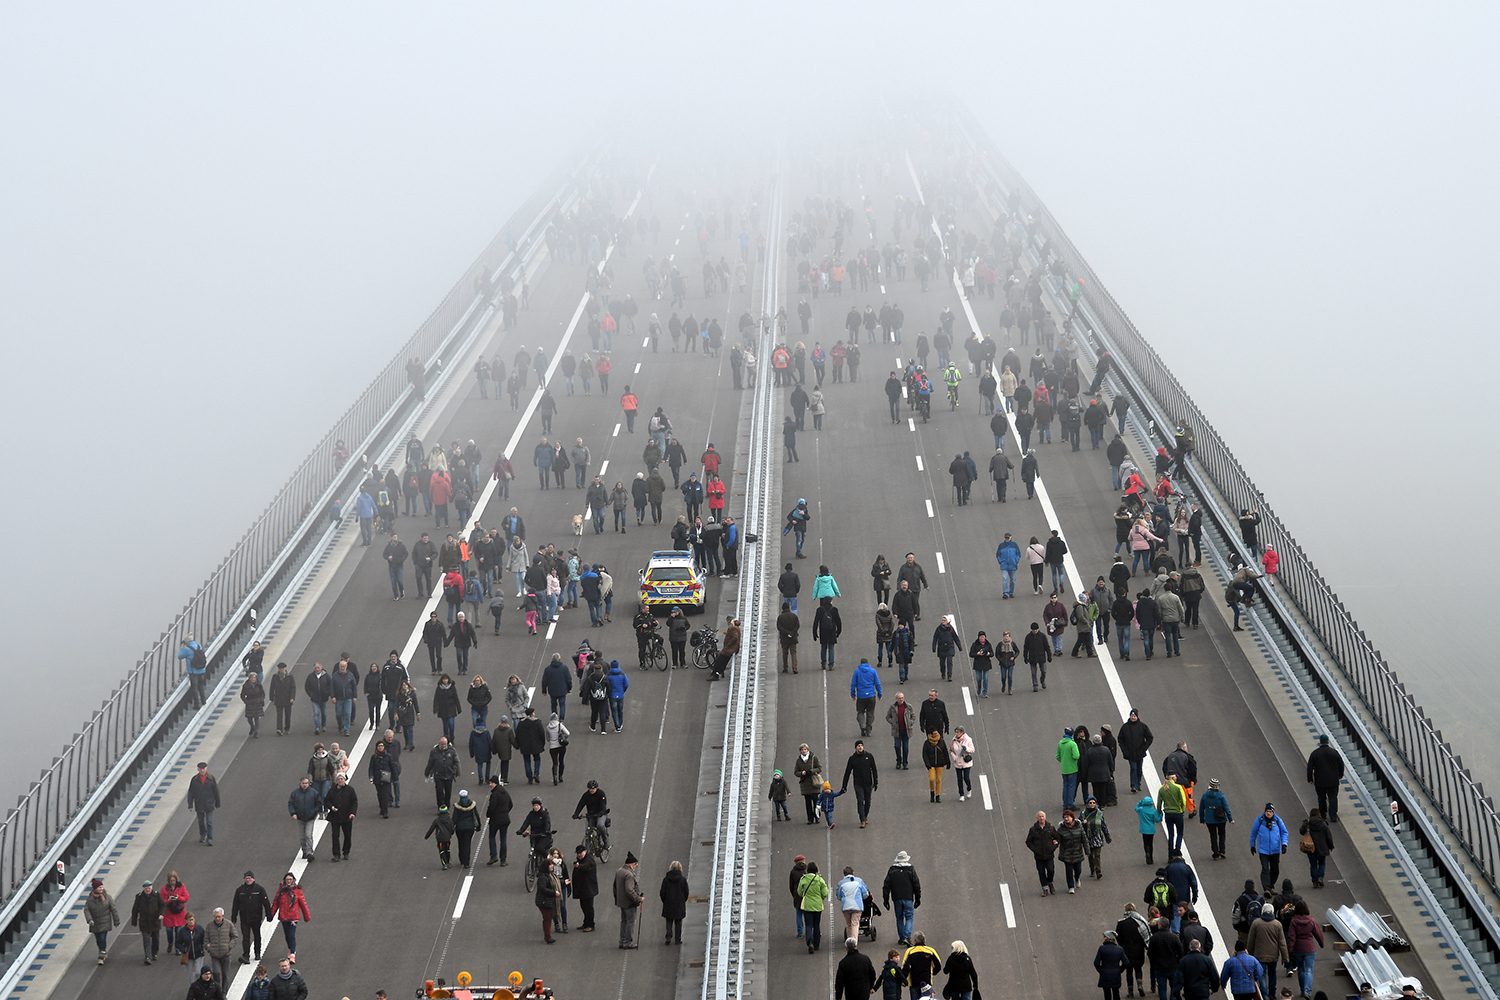 People walk on the Hochmosel Bridge ahead its opening after eight years of construction in Zeltingen-Rachtig, Germany, on Nov. 16. HARALD TITTEL/dpa/AFP via Getty Images